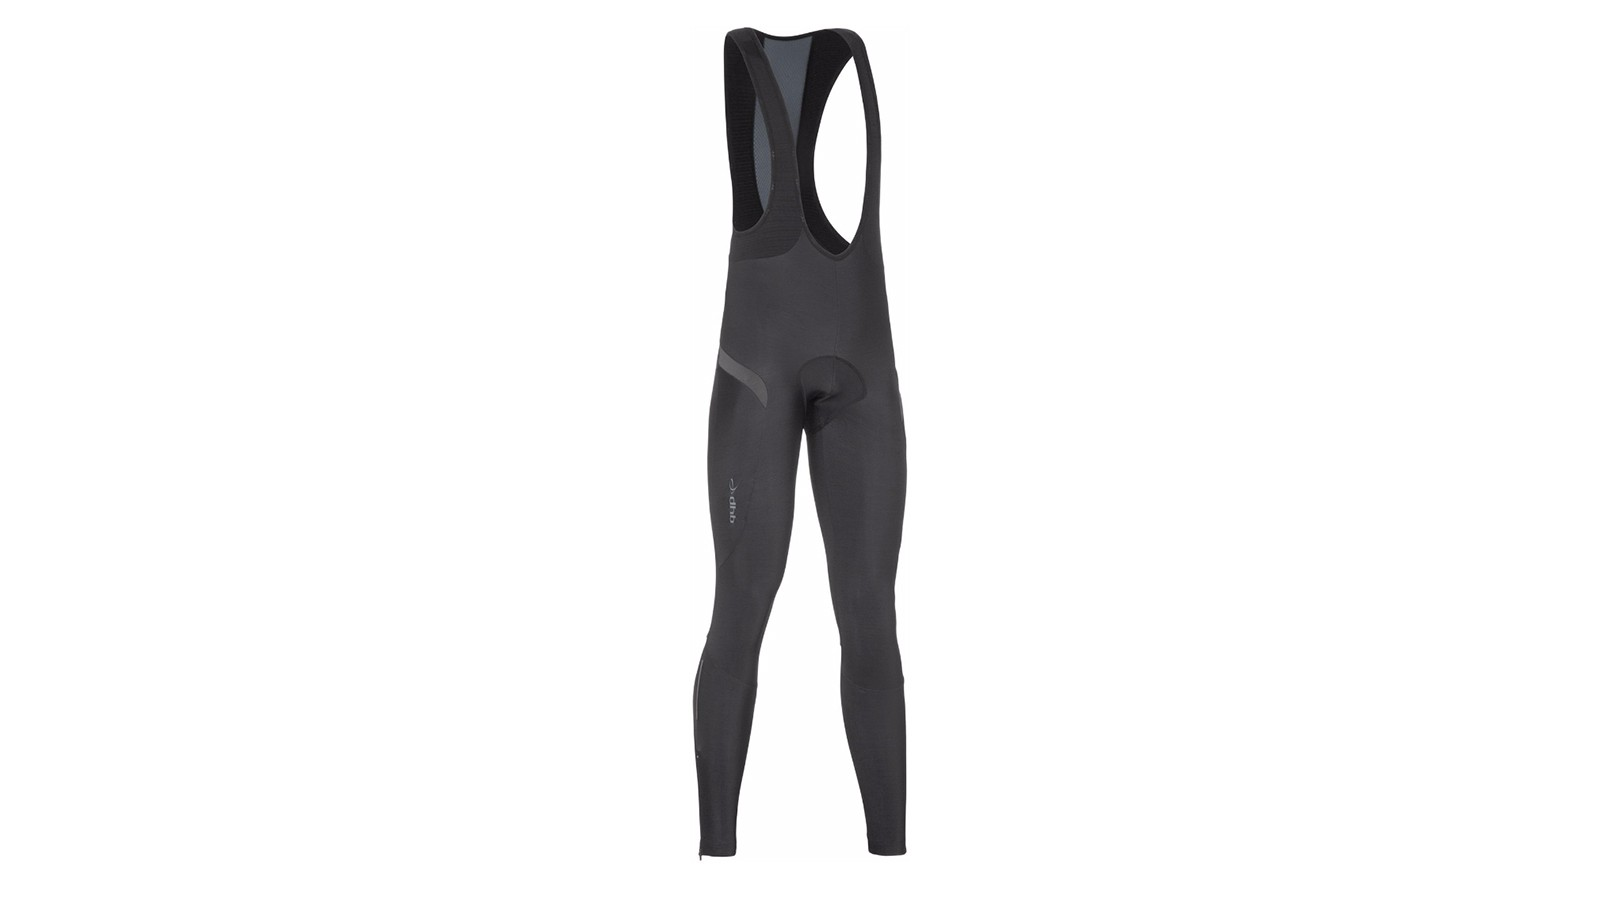 dhb tights will keep your legs toasty in cold weather